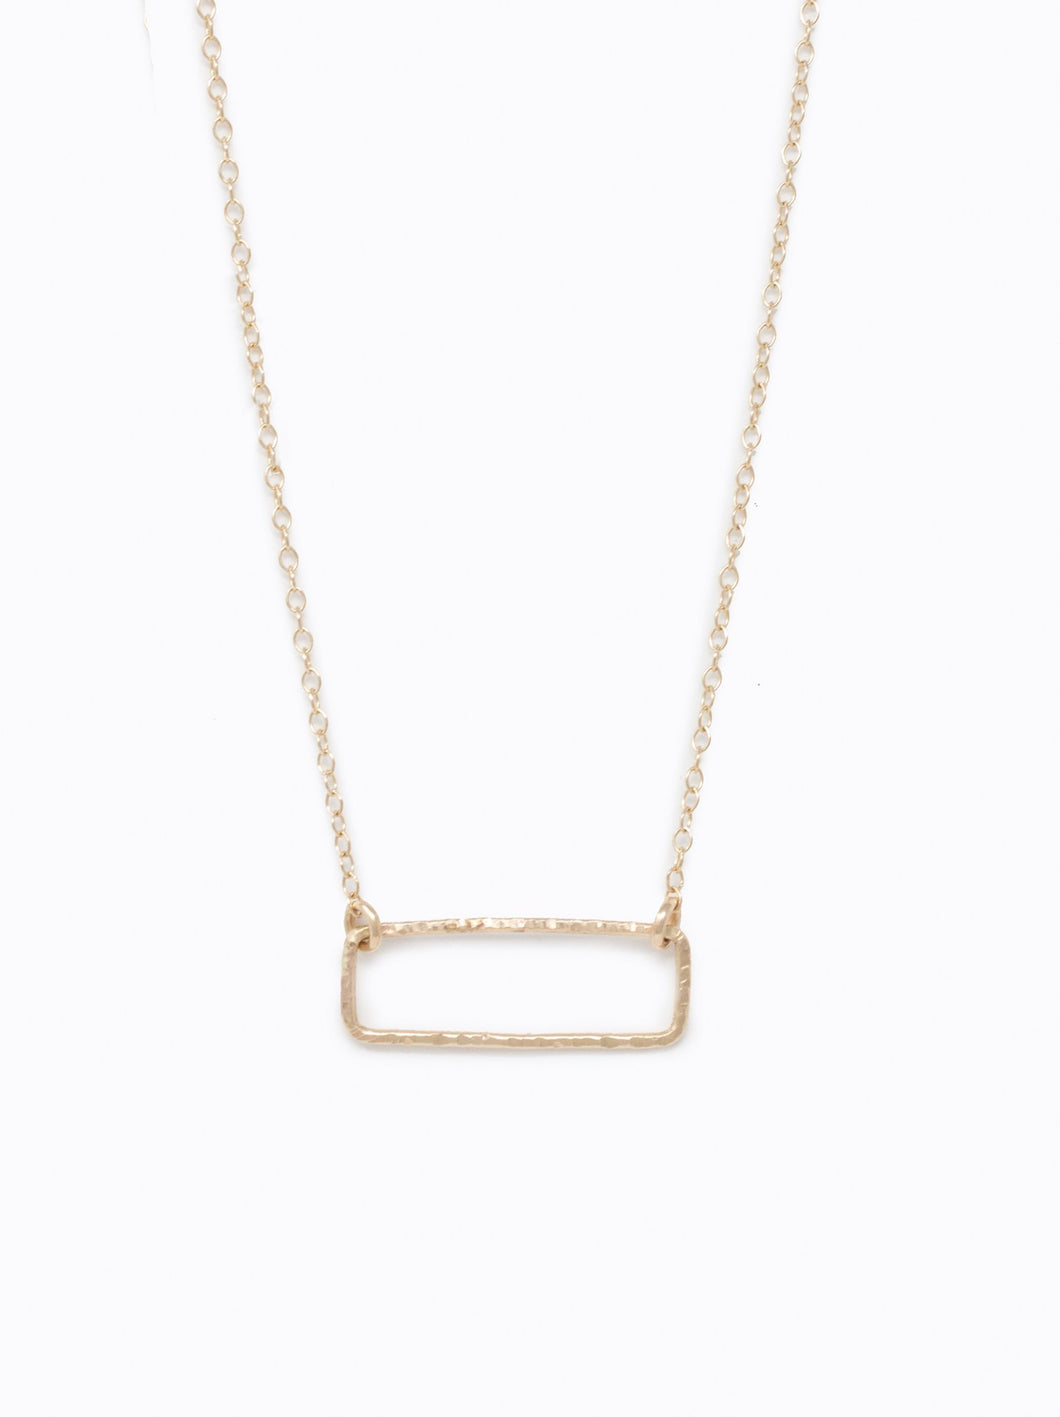 Able Floating Shape Necklace